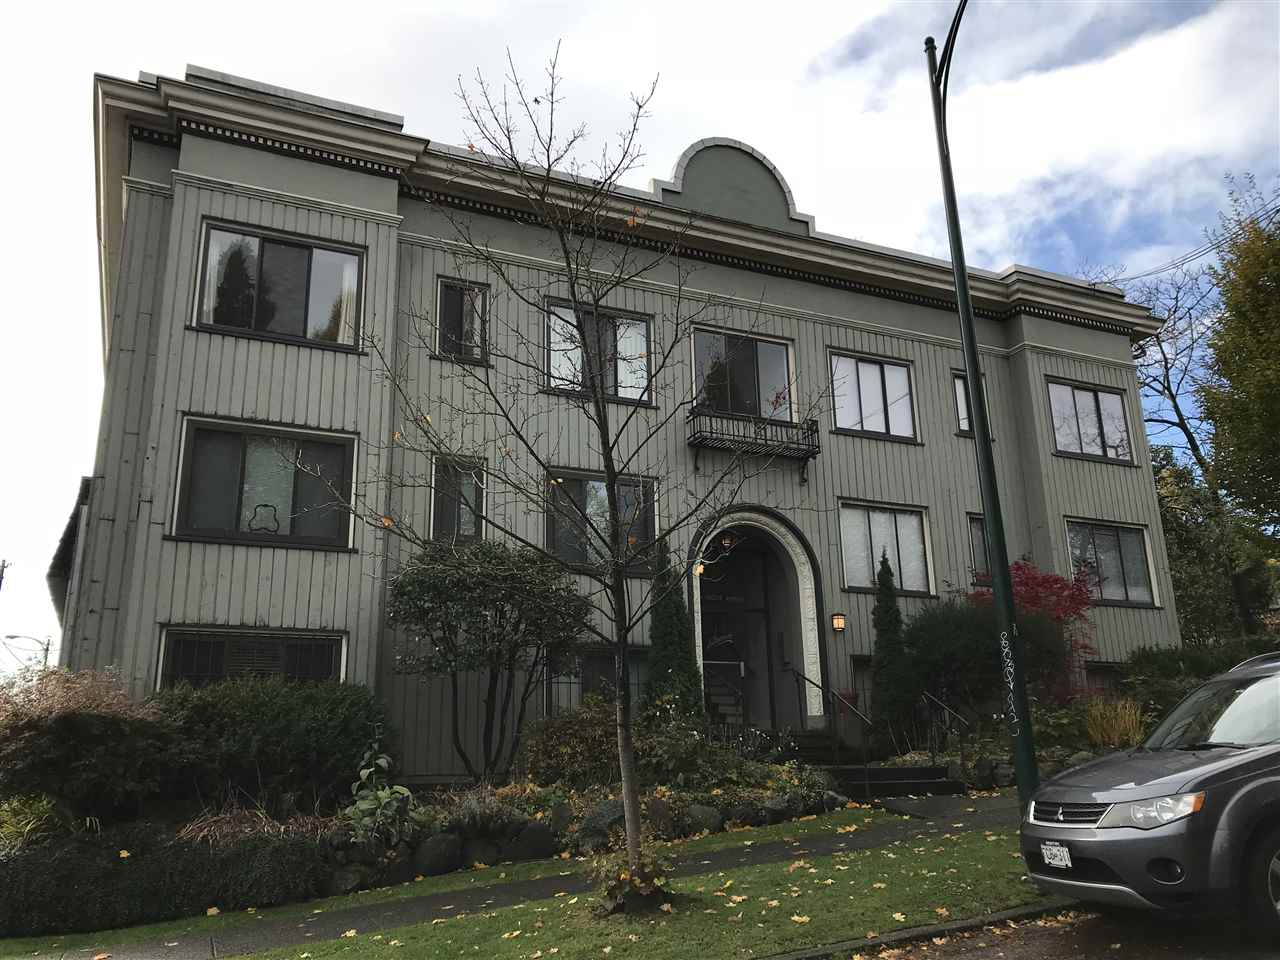 "Main Photo: 102 1004 WOLFE Avenue in Vancouver: Shaughnessy Condo for sale in ""ALVARADO"" (Vancouver West)  : MLS®# R2266813"